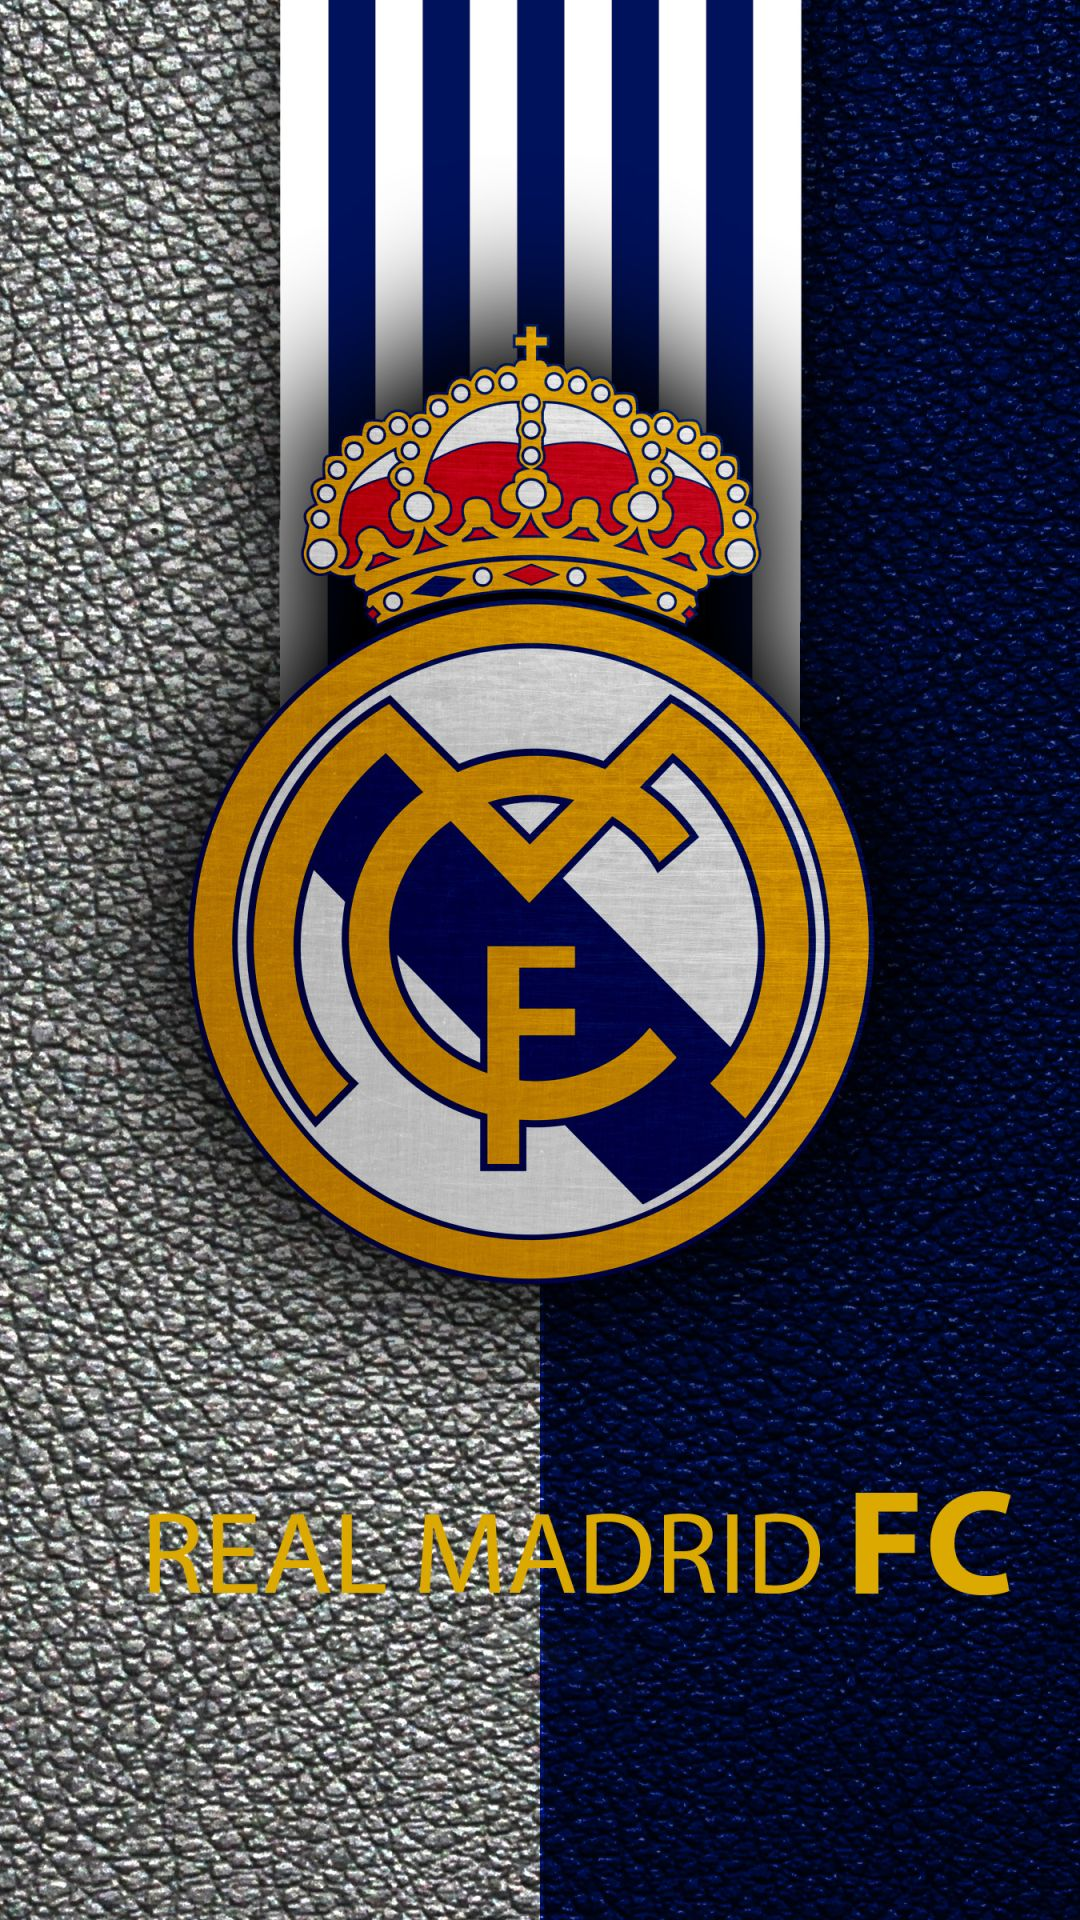 Visit Real Madrid On High Definition Wallpaper At Rainbowwallpaper Info Pin If You Like I In 2020 Madrid Wallpaper Real Madrid Wallpapers Real Madrid Logo Wallpapers